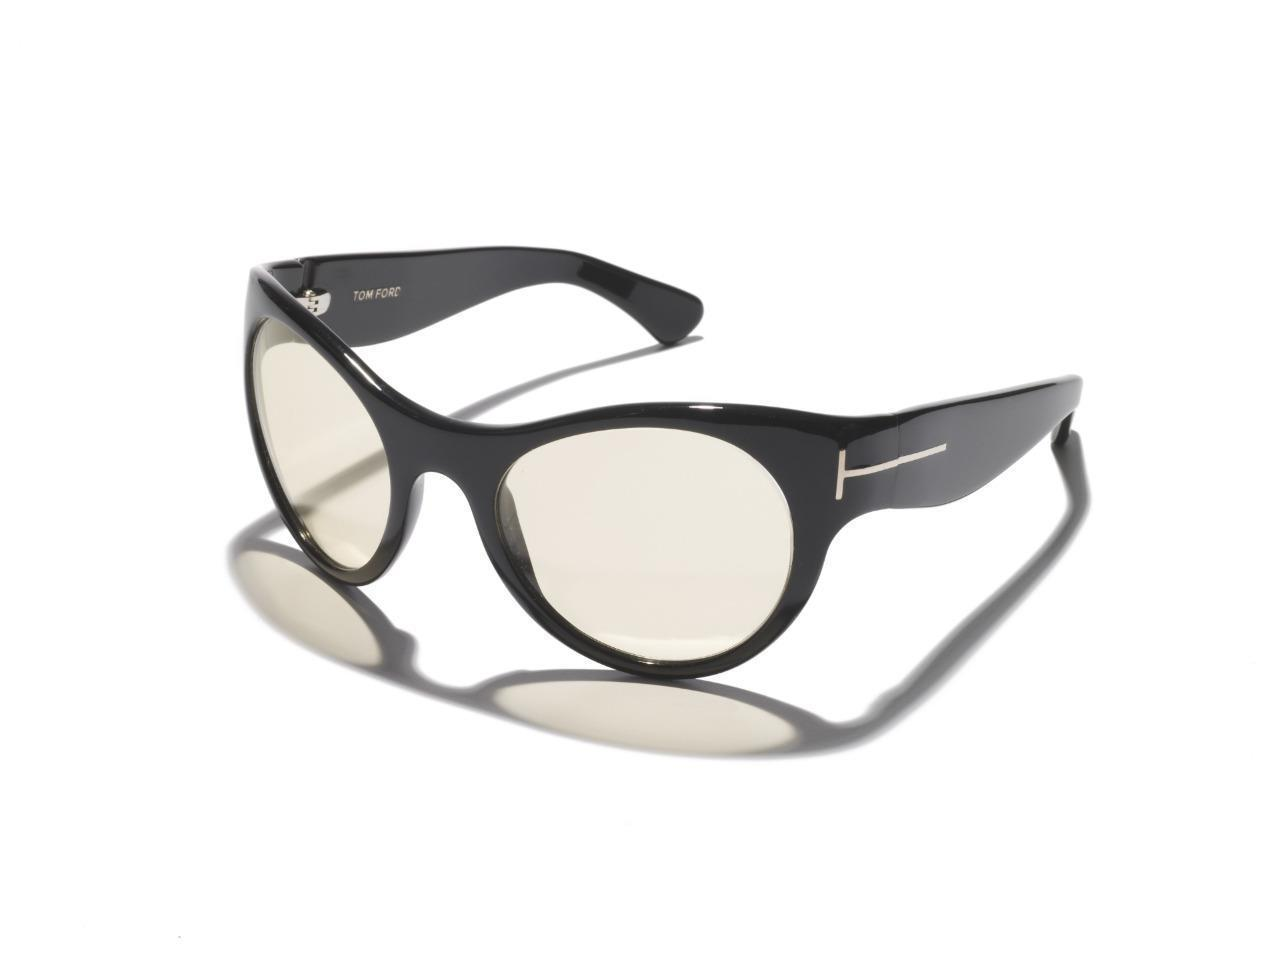 88c24ca5a4f23 New Authentic Eyeglasses TOM FORD TF 5096 and 50 similar items. S l1600